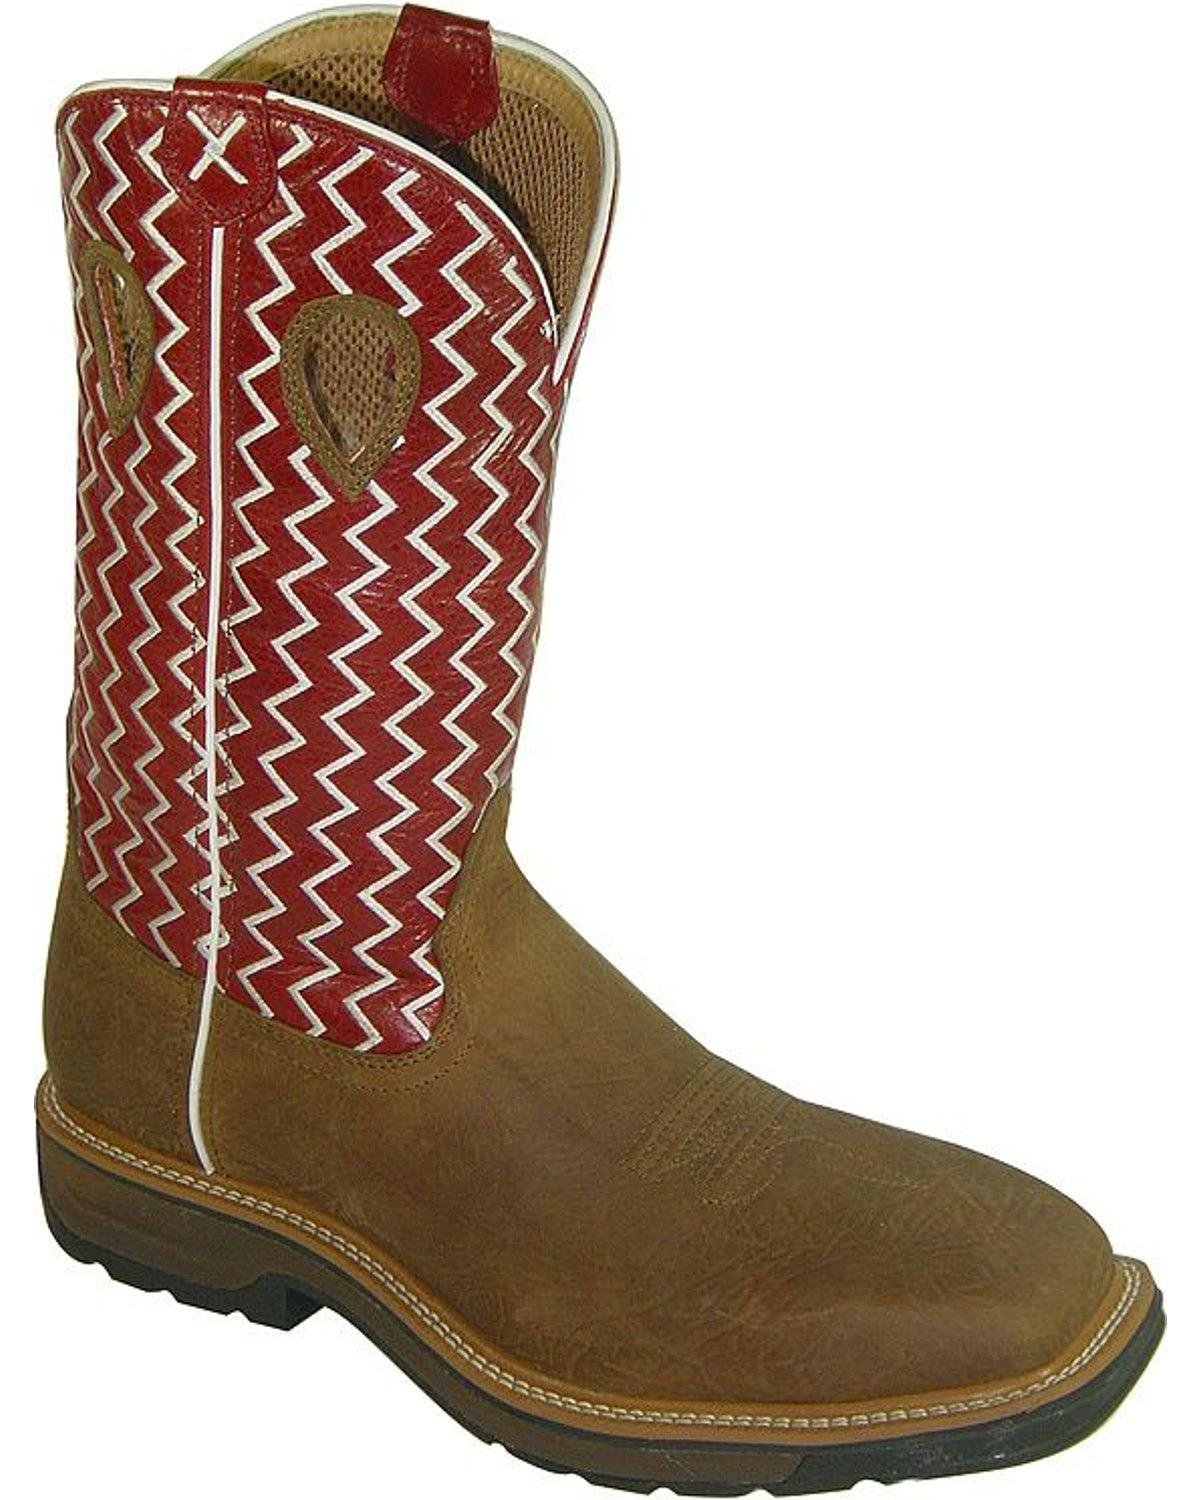 MLCW001 Twisted X Men's Lite Cowboy Work Boots - Cherry/Brown - 11.0 - D